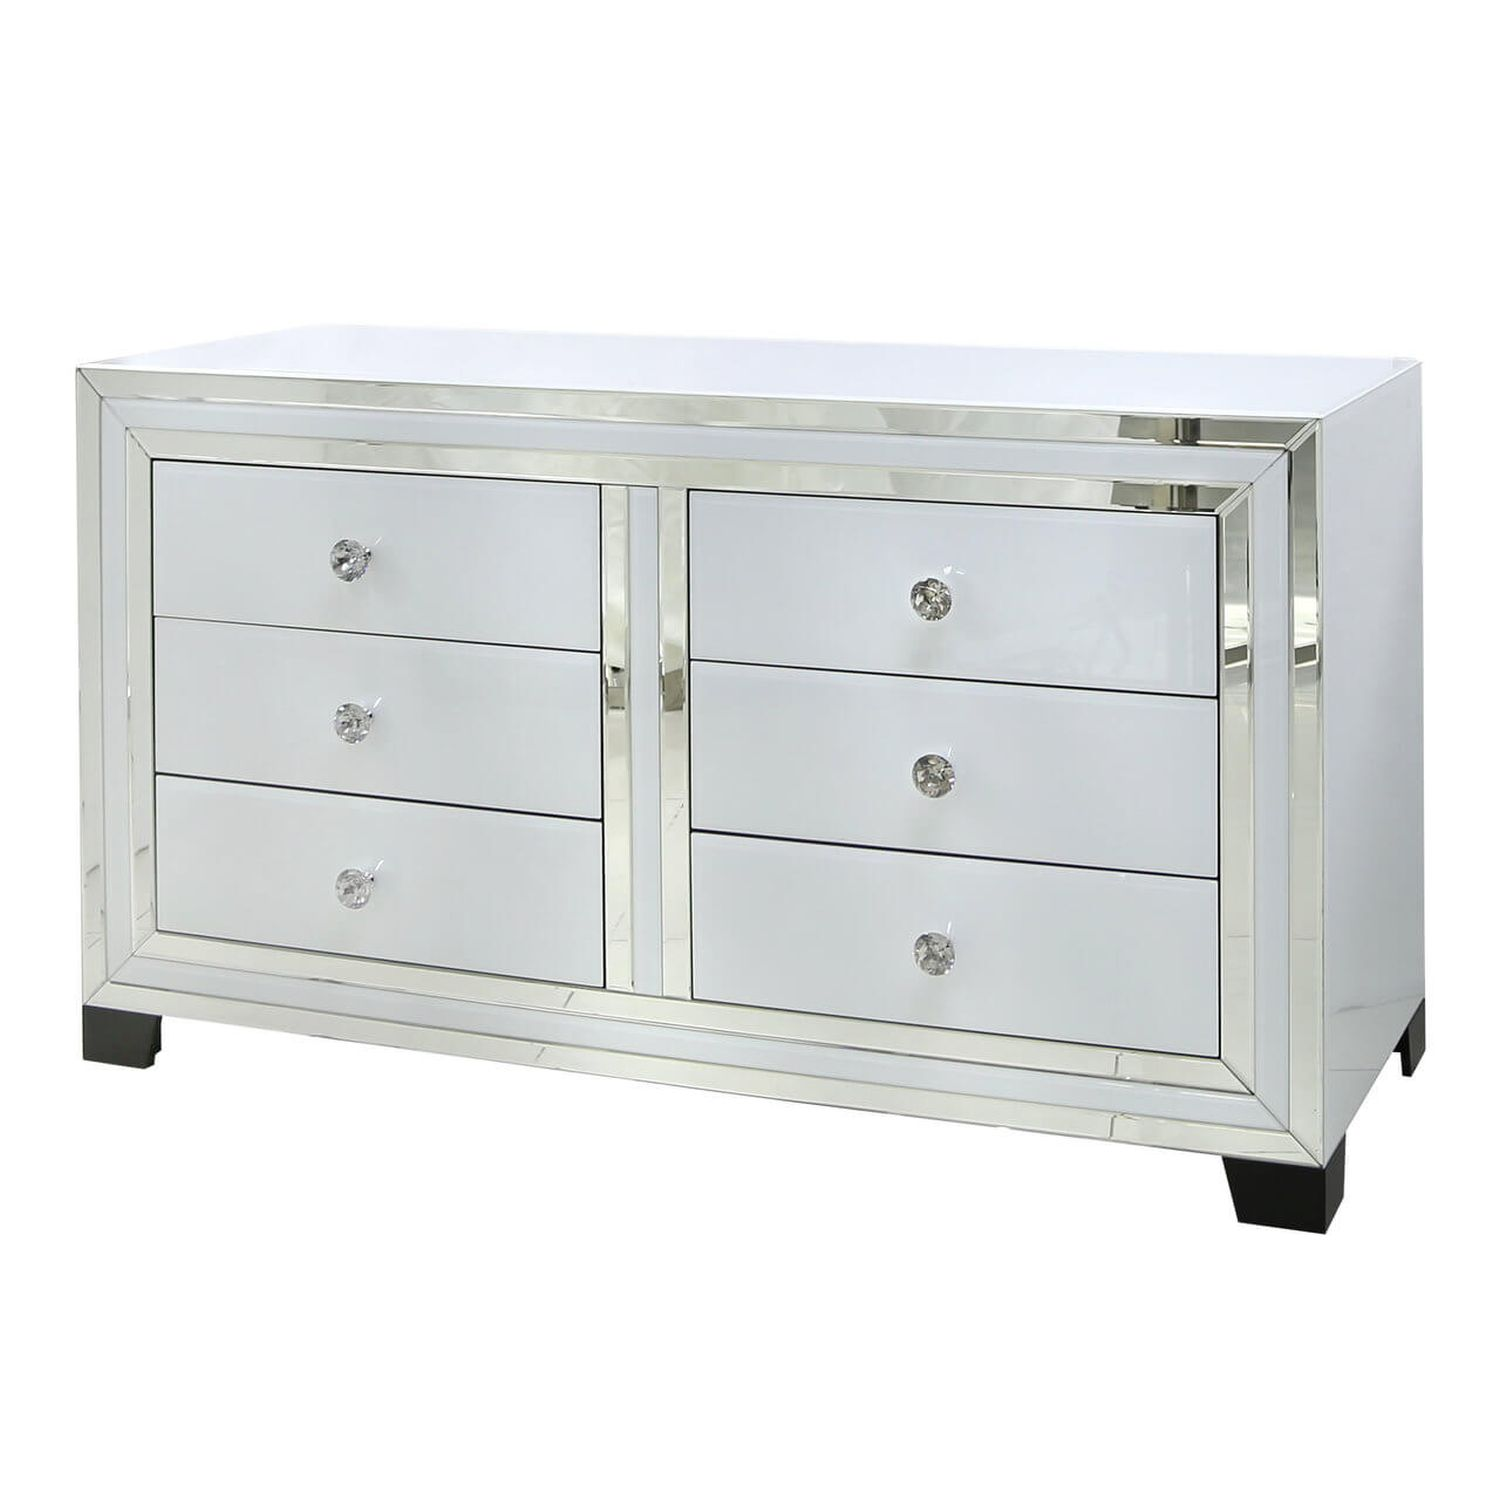 Image of Casa Blanco 6 Drawer Wide Chest